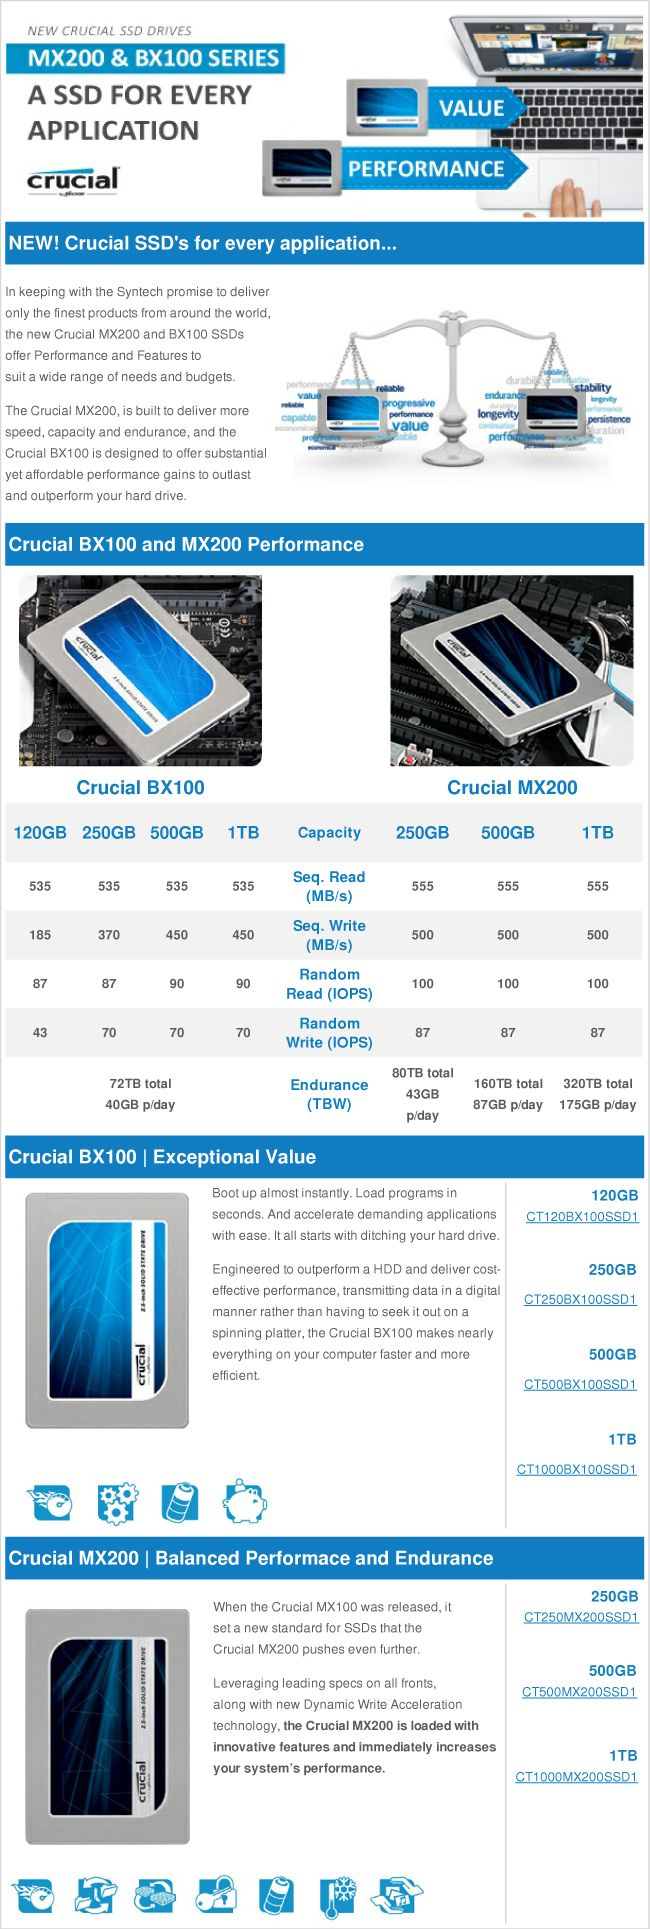 Crucial_BX100_and_MX200_SSDs.jpg (650×1929)